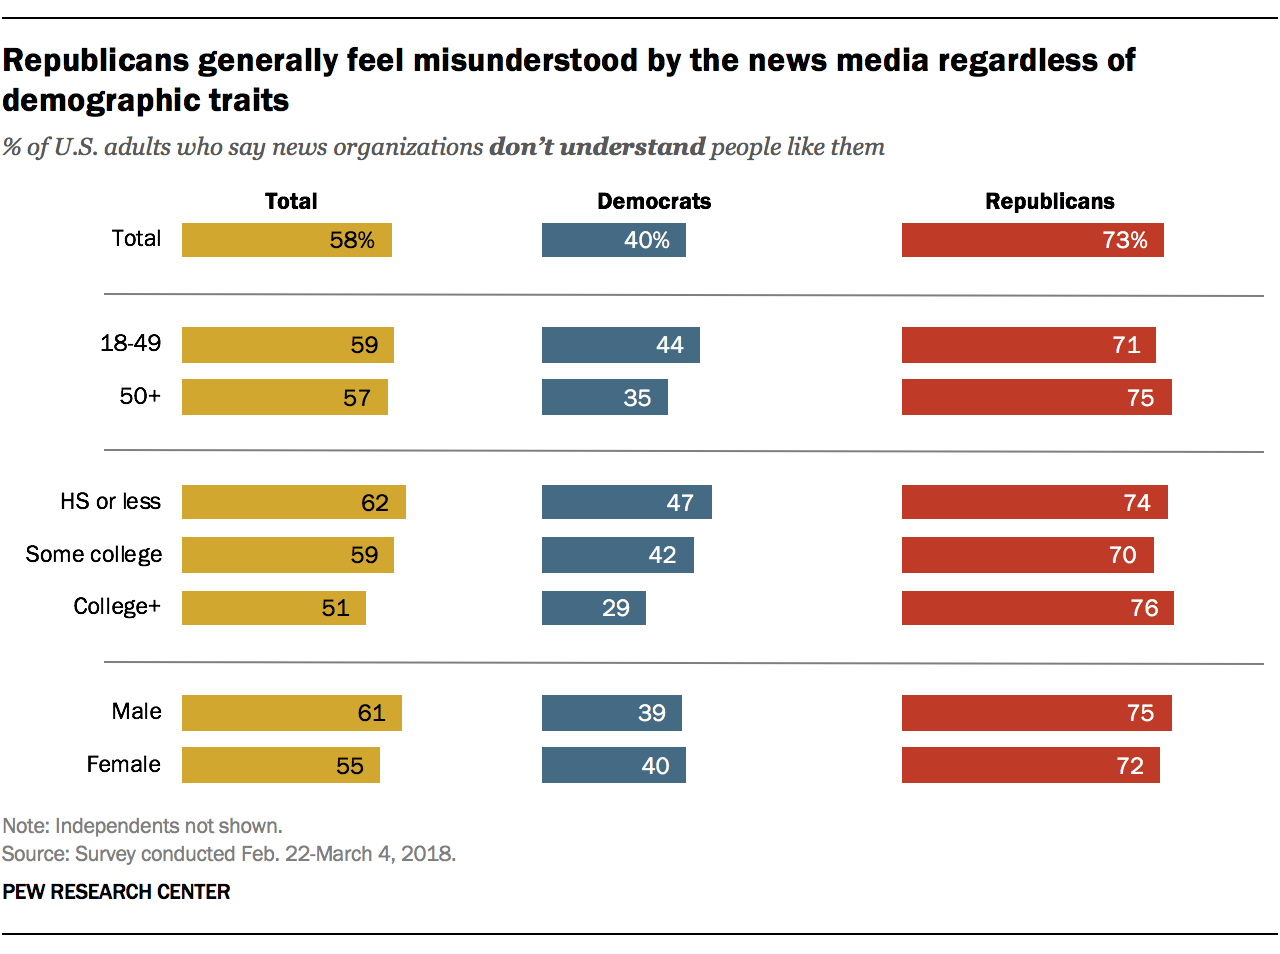 Republicans generally feel misunderstood by the news media regardless of demographic traits